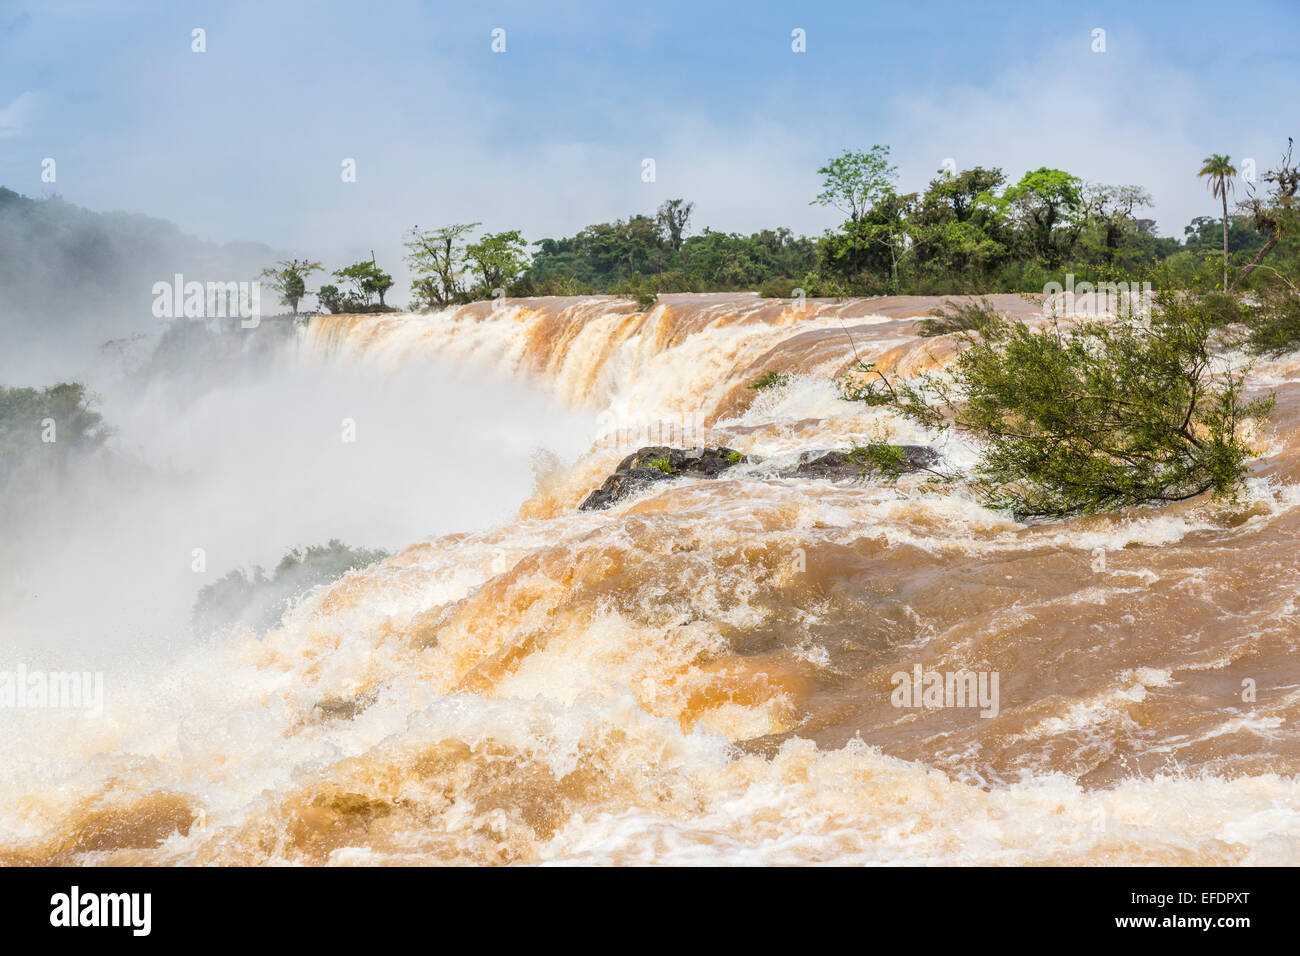 Natural wonders: View of the magnificent huge Iguazu Falls in full spate, viewed from the Argentinian side on a - Stock Image